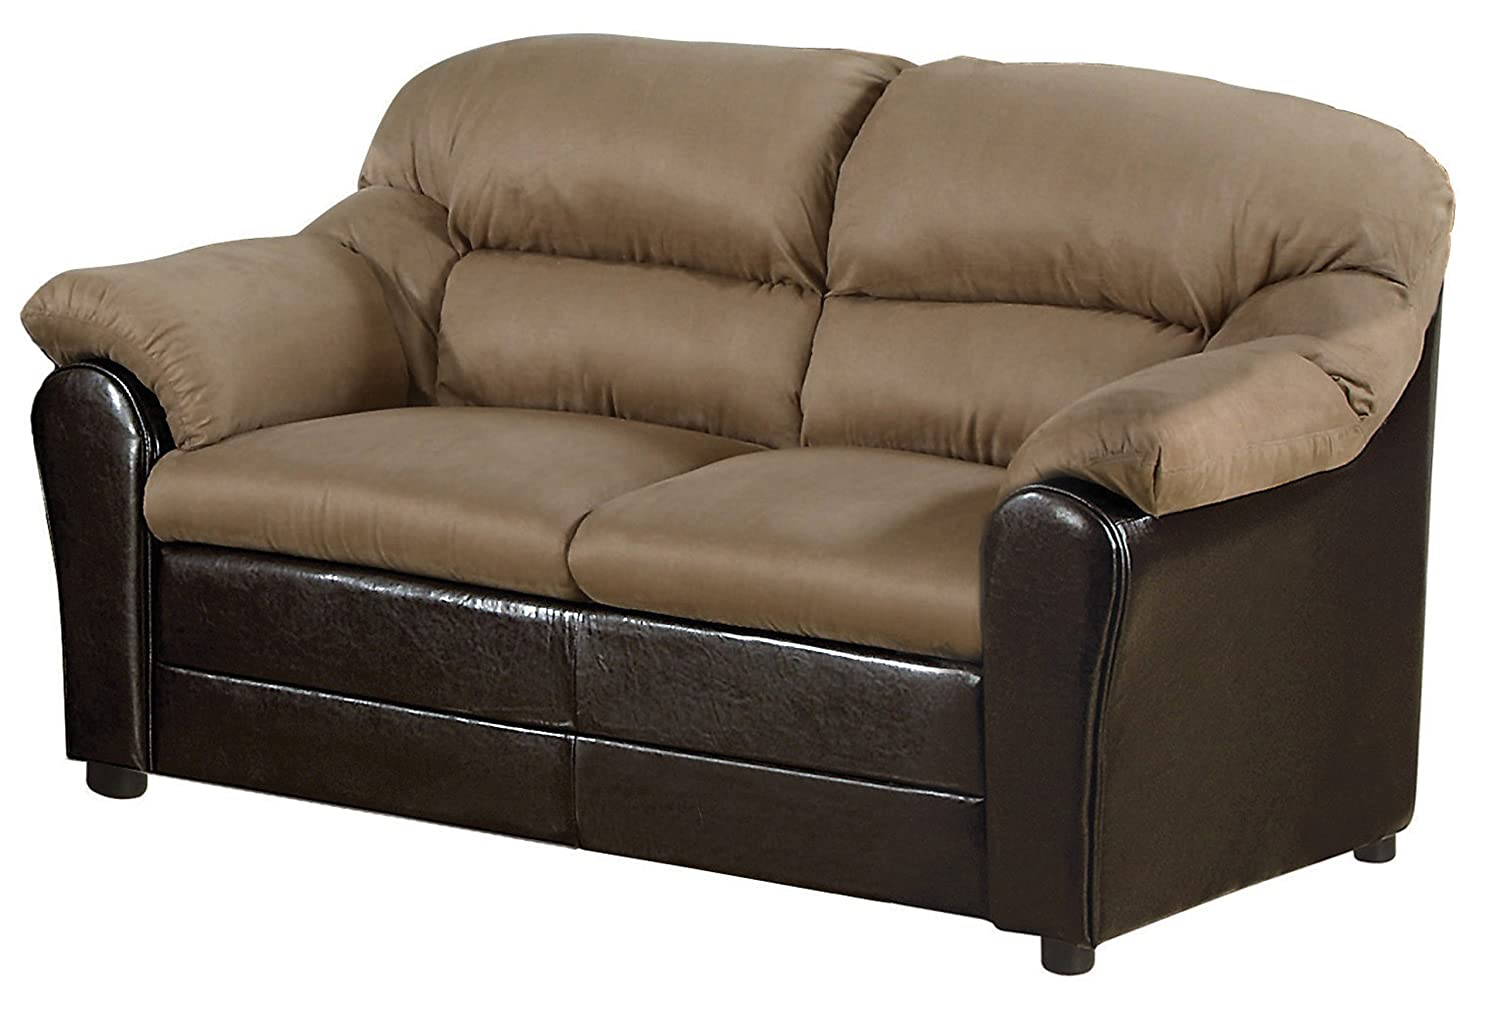 Acme 15141A Connell Loveseat - Saddle Microfiber and Espresso Polyurethane Finish